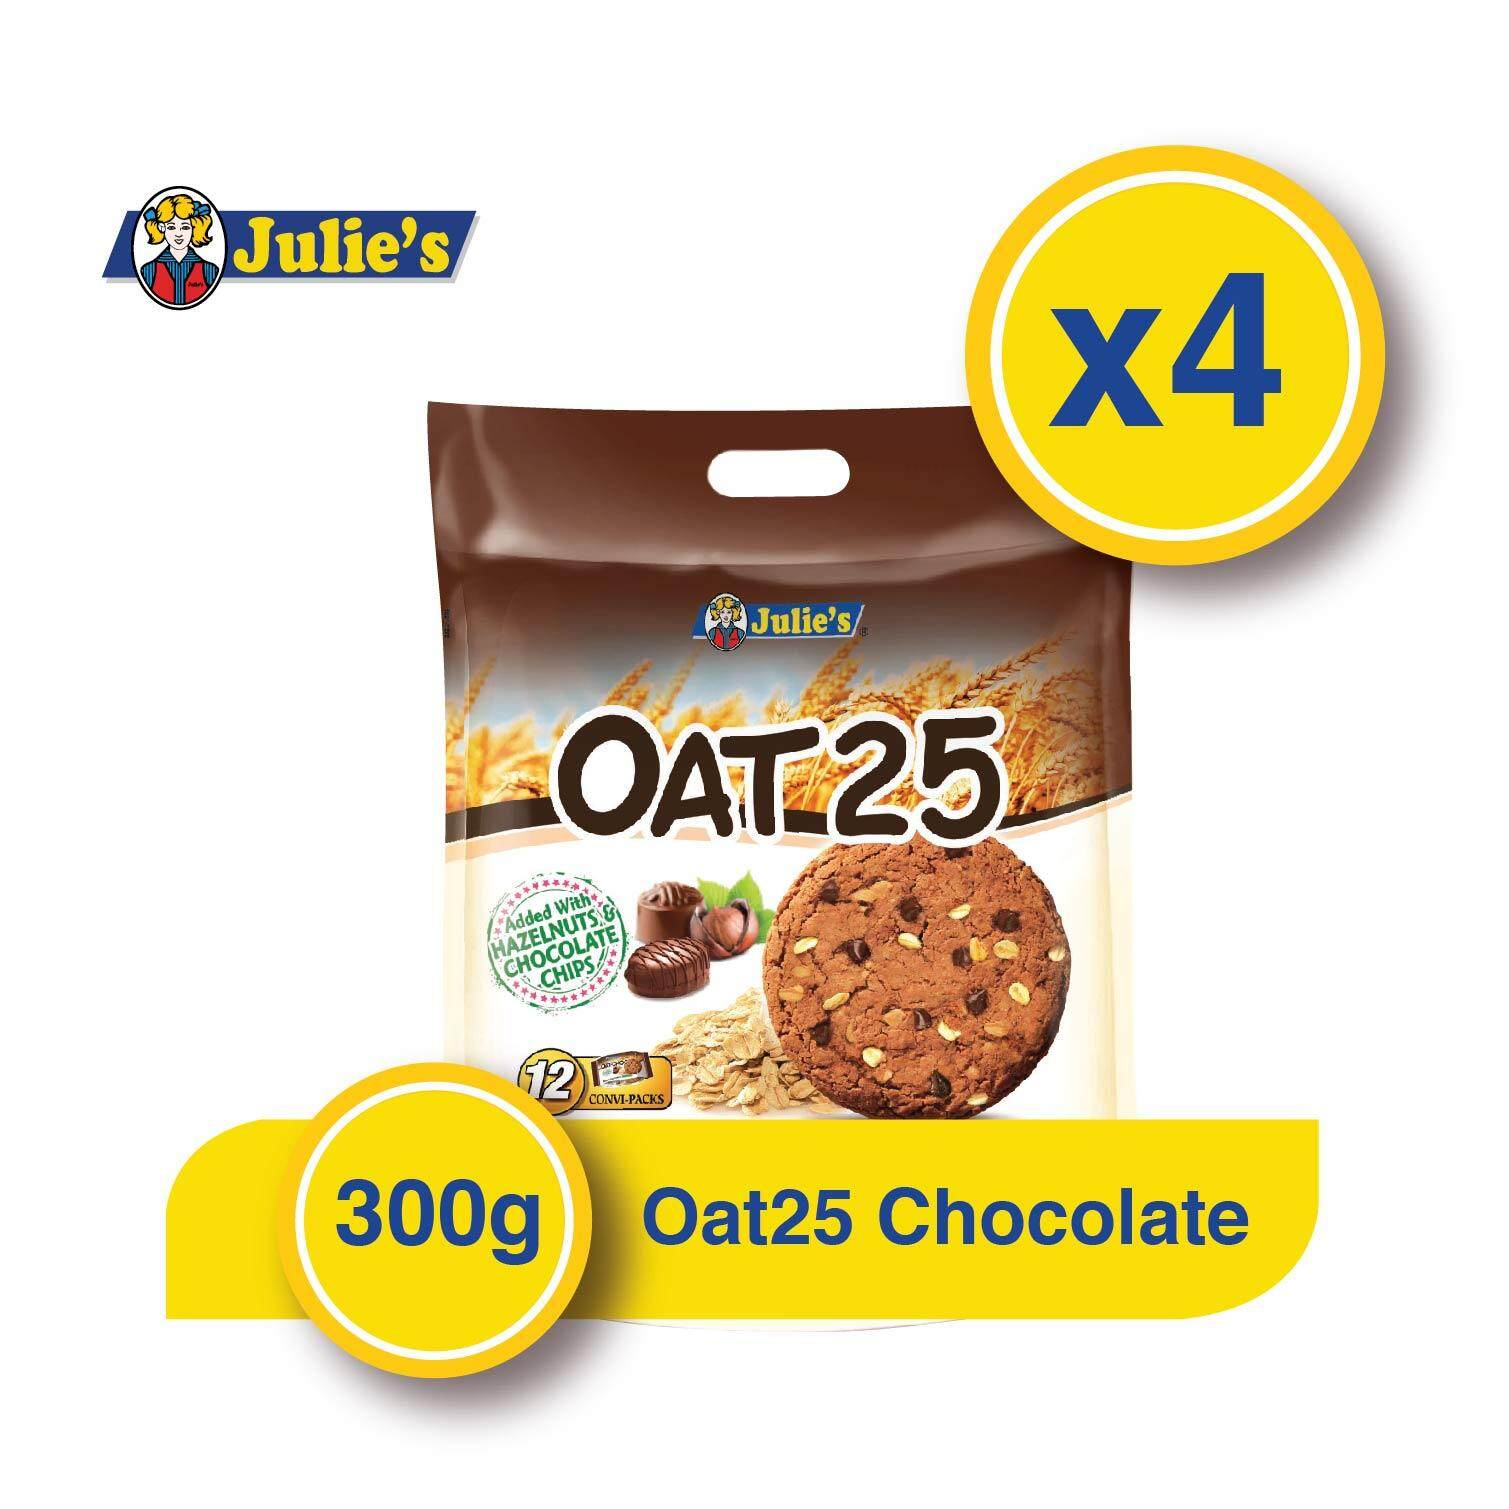 Julie's Oat25 Chocolate Biscuit x 4 packs